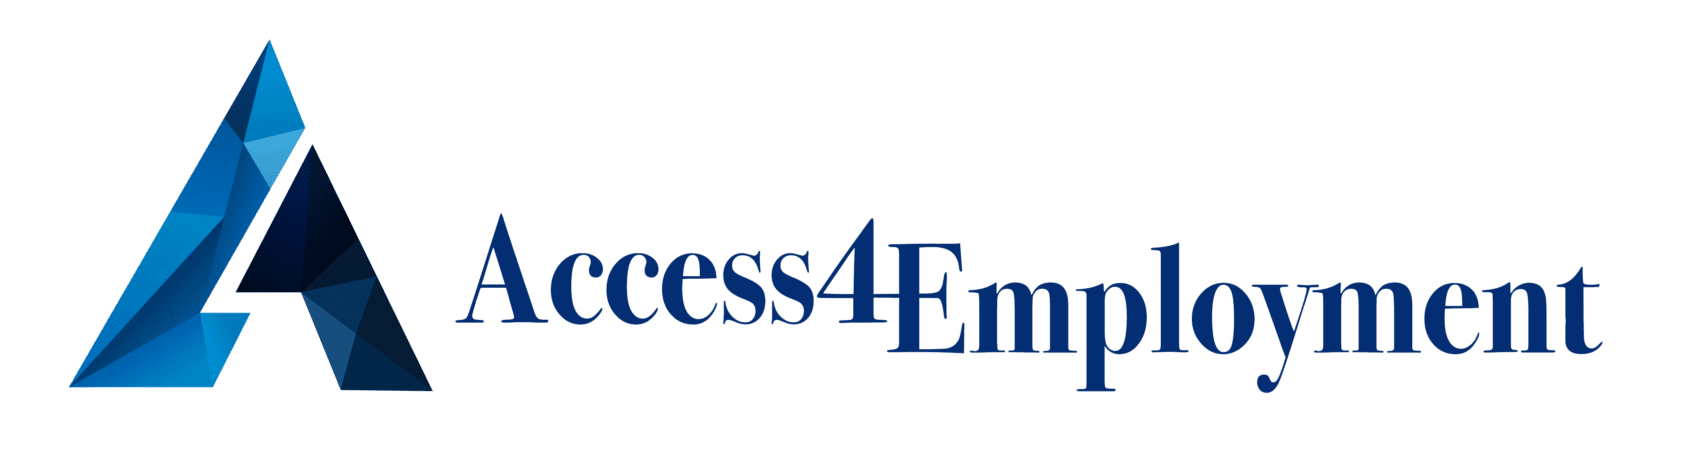 Access 4 Employment Logo, Geometric letter A in various shades of blue with business name